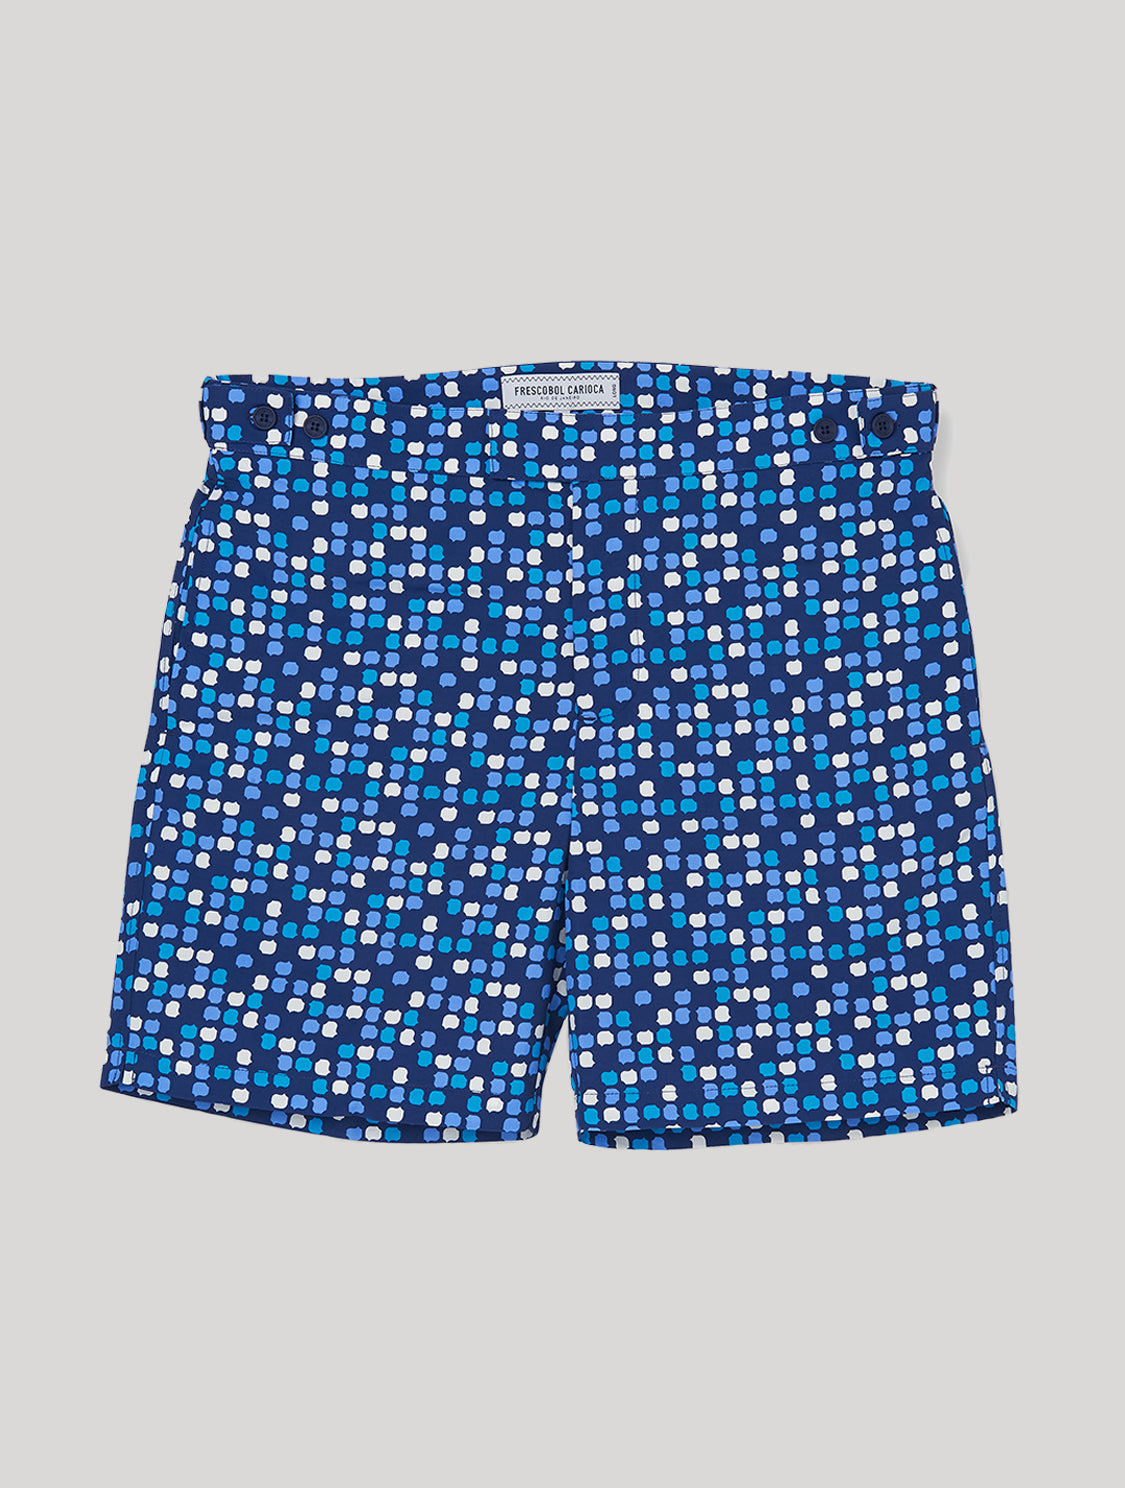 Guarana Tailored Shorts